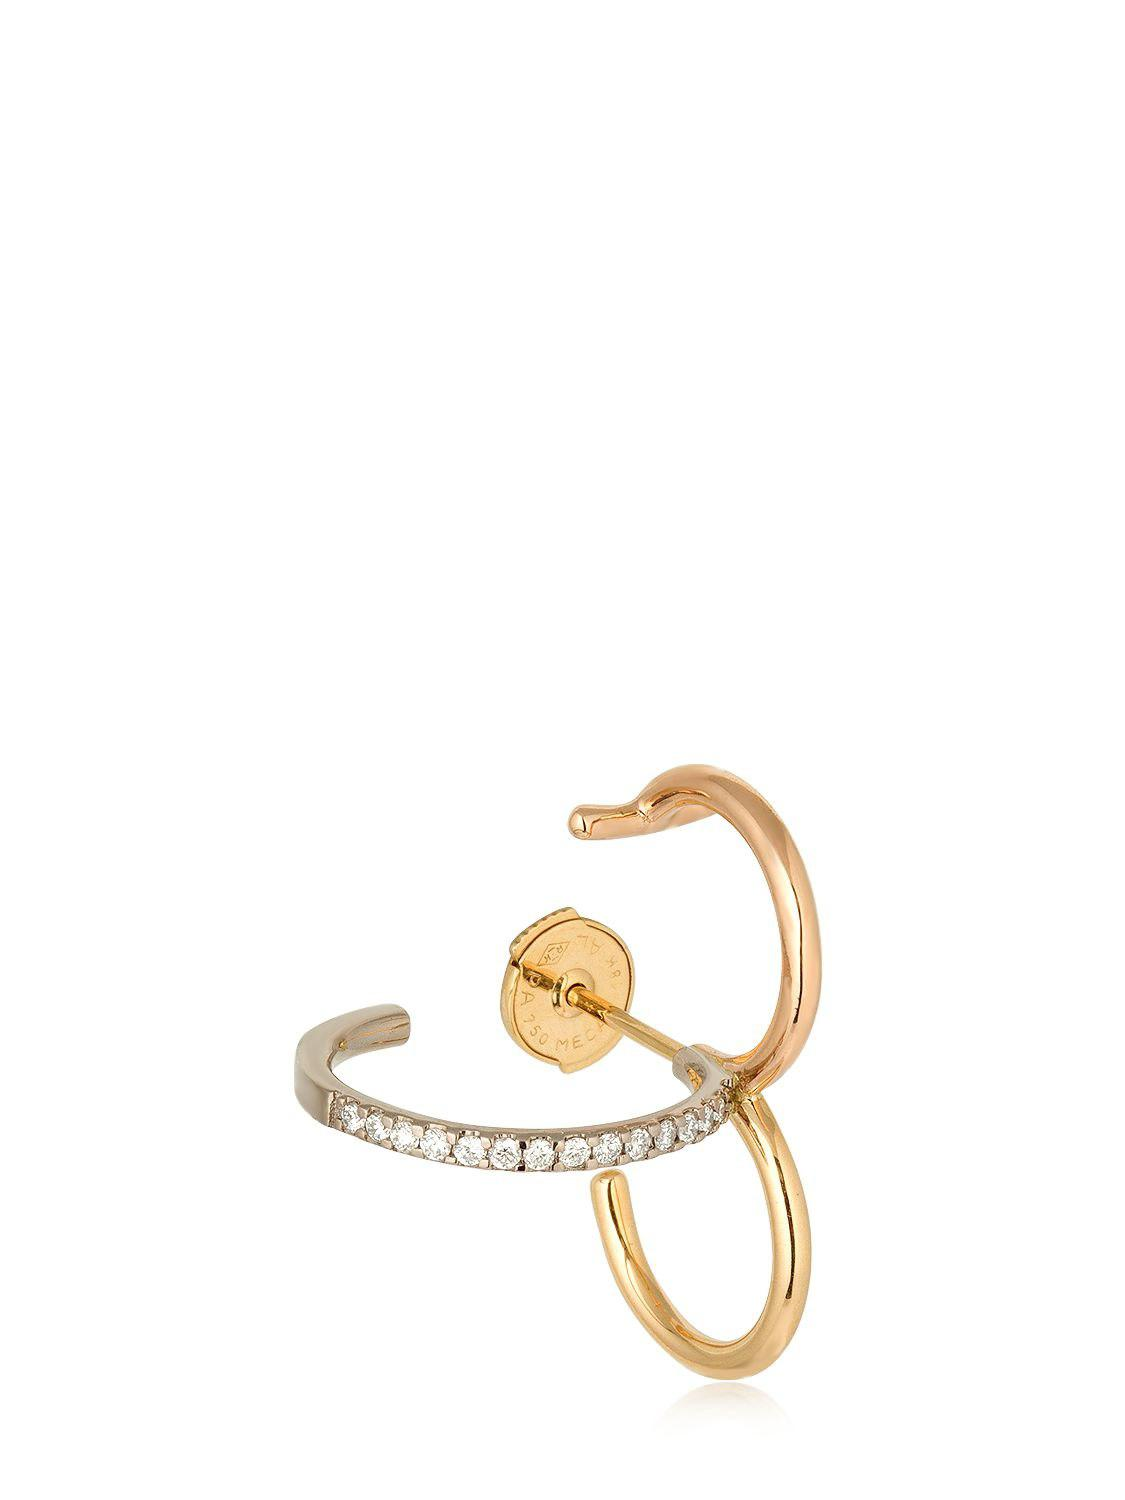 Charlotte Chesnais Clover Mono Earring in Yellow, Rose and White 18K Gold and Diamonds